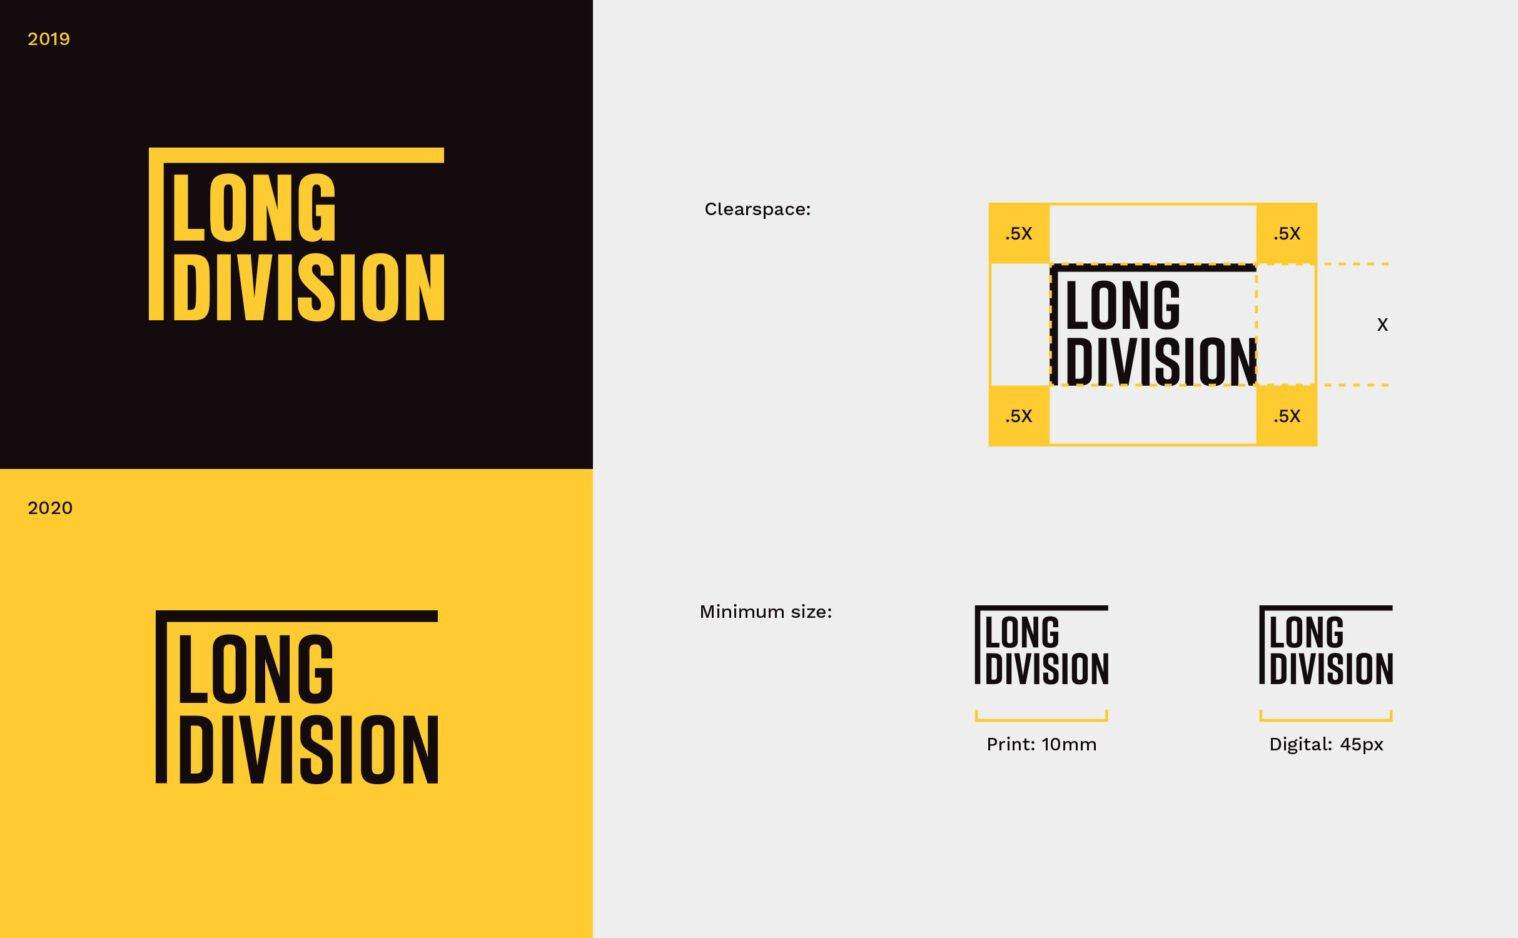 Long Division logo guidelines